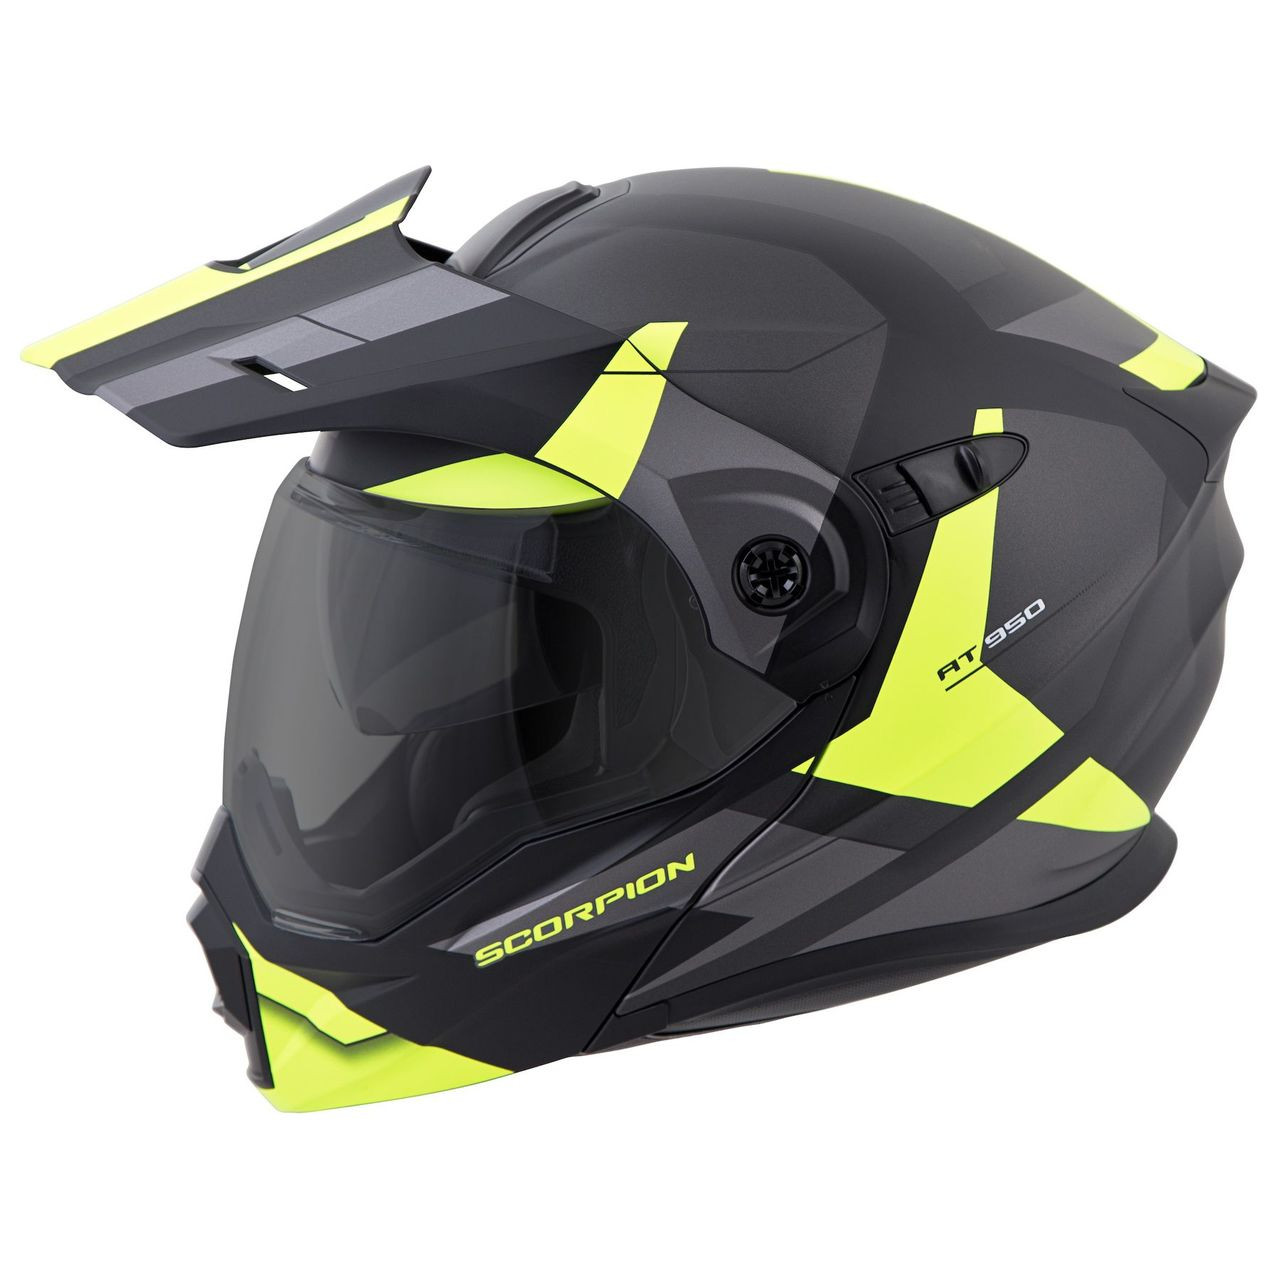 e257d644 SCORPION EXO-AT950 Hi-Viz Yellow Neocon HELMET ALL SIZES 95-1015